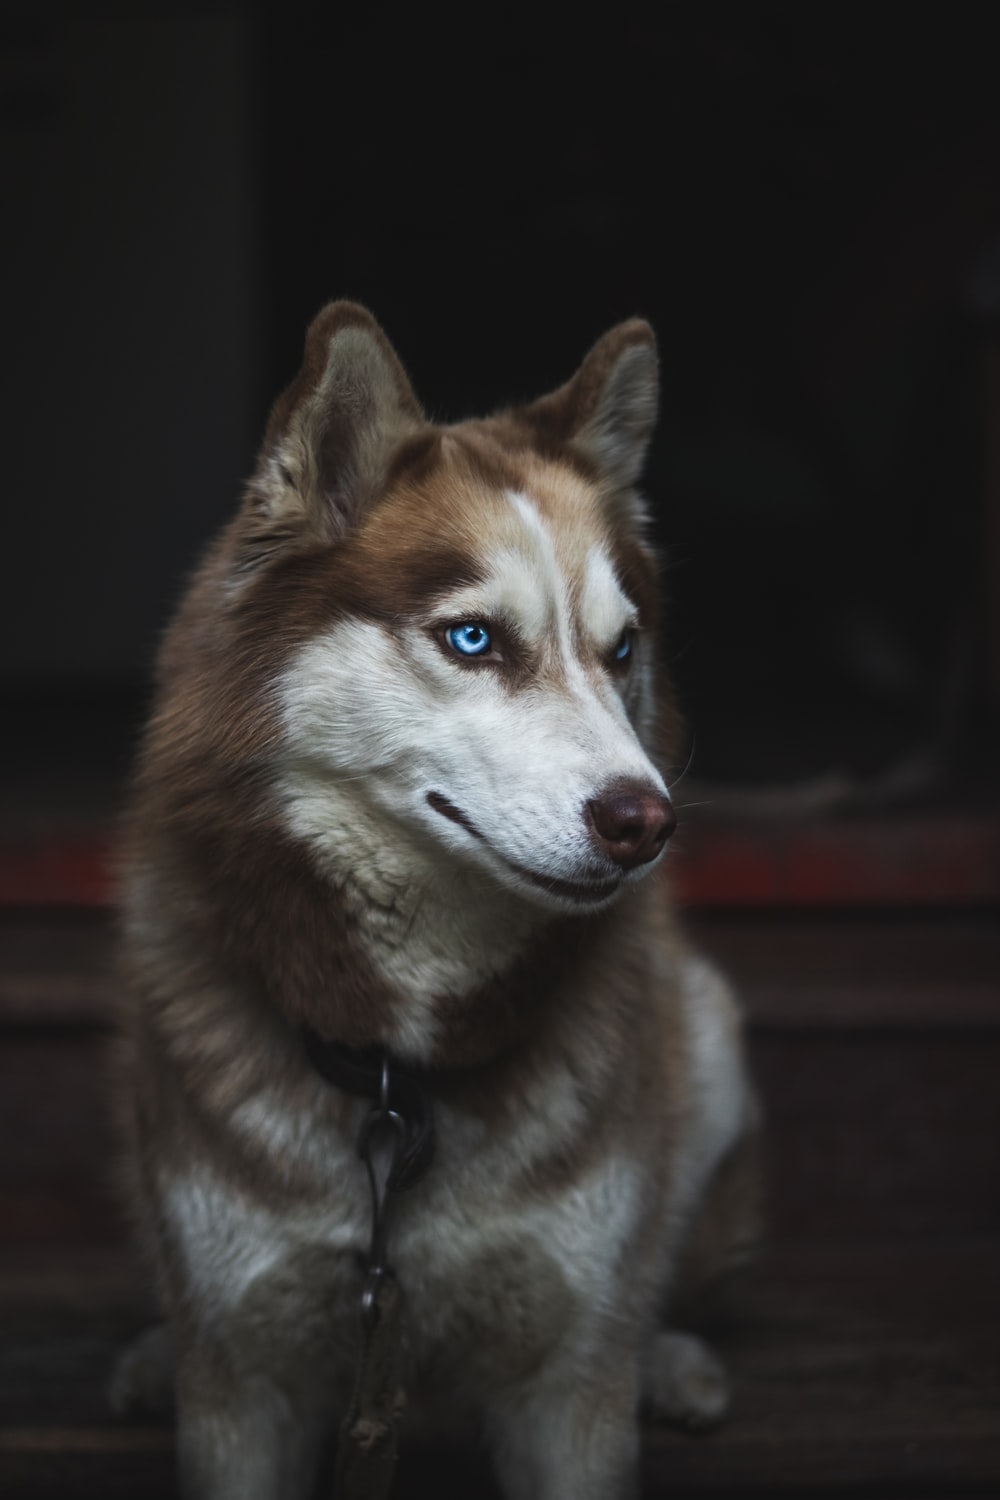 Husky Wallpapers Free Hd Download 500 Hq Unsplash